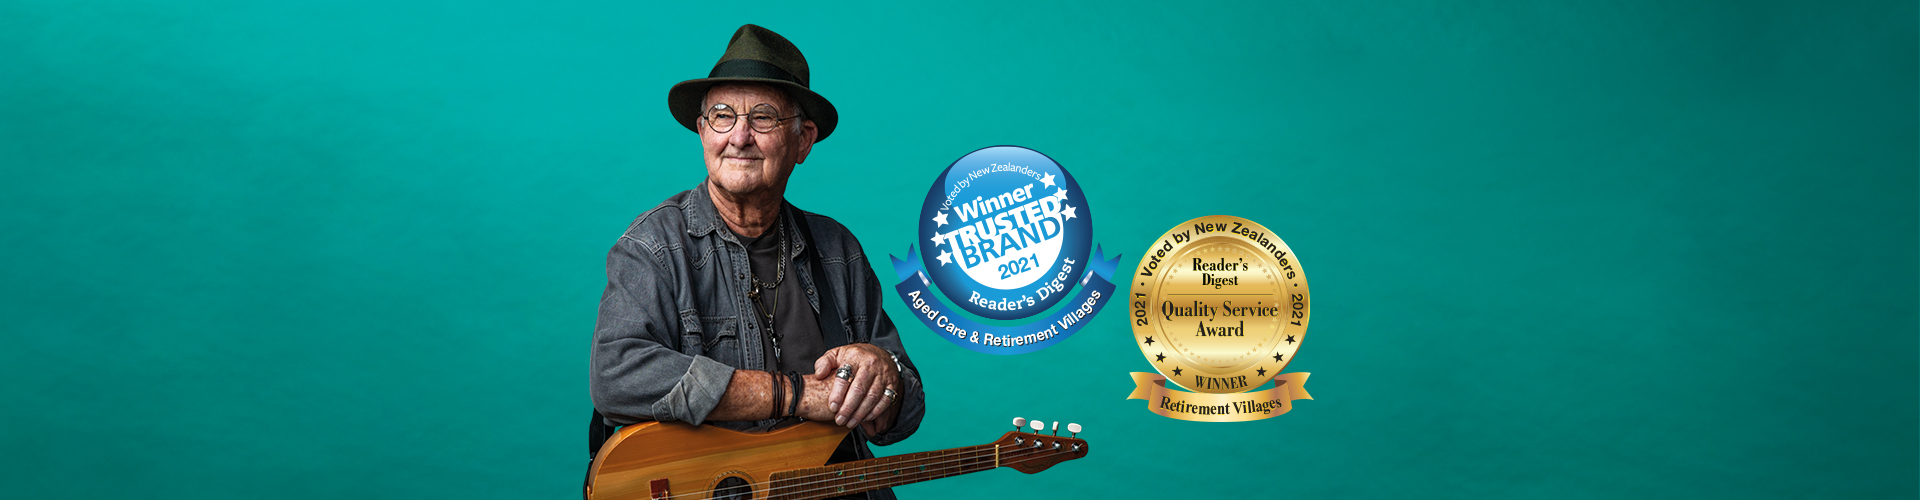 Trusted-Brands-Awards-Page-Banner-1920x500